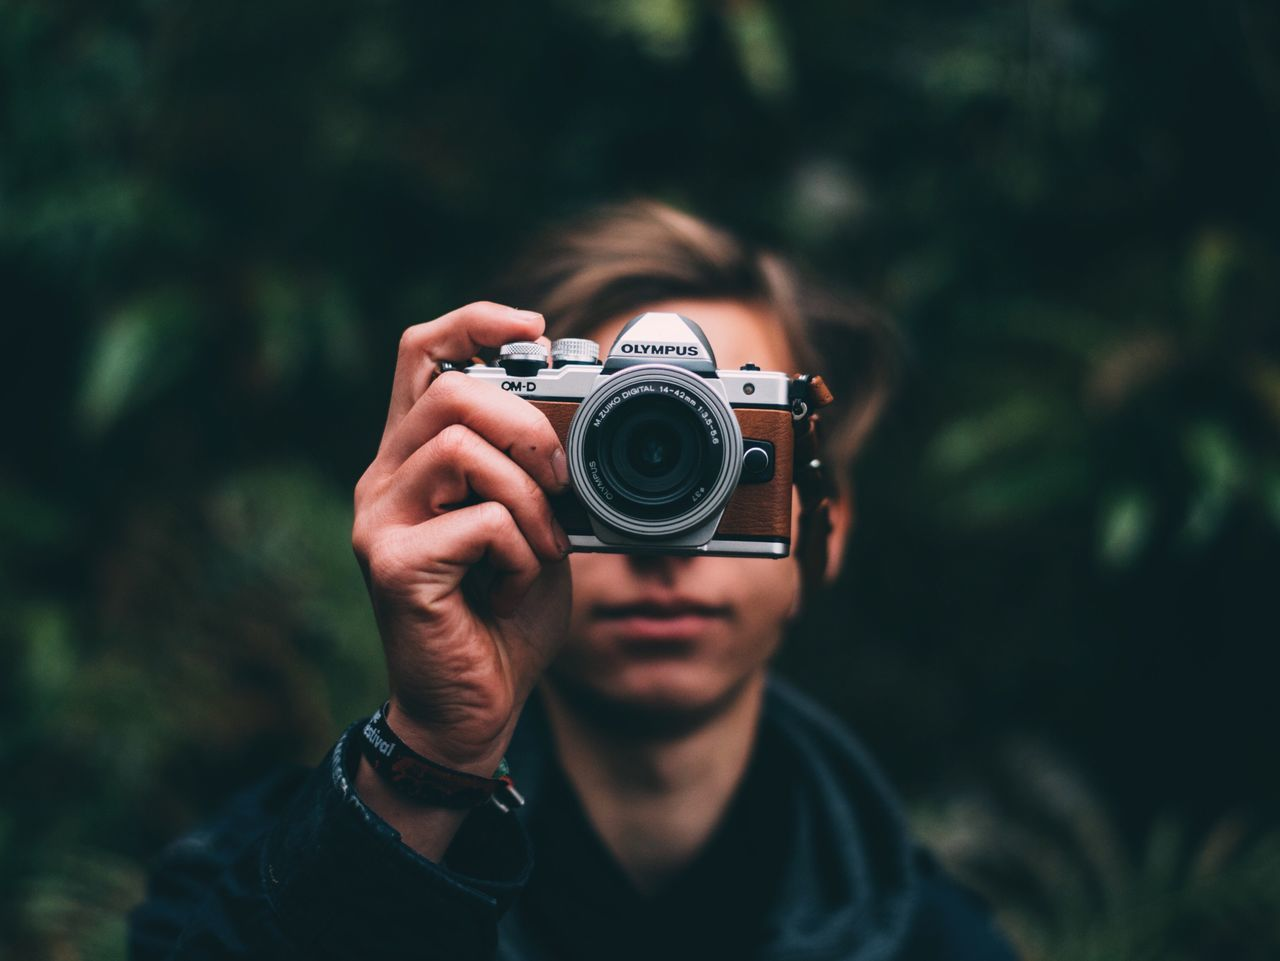 Focus Object Camera Focus 50mm Photographing One Person Equipment Outdoors Nature Green Color Autumn Landscape Forest Moody Photographer Photography Themes Holding People Human Hand